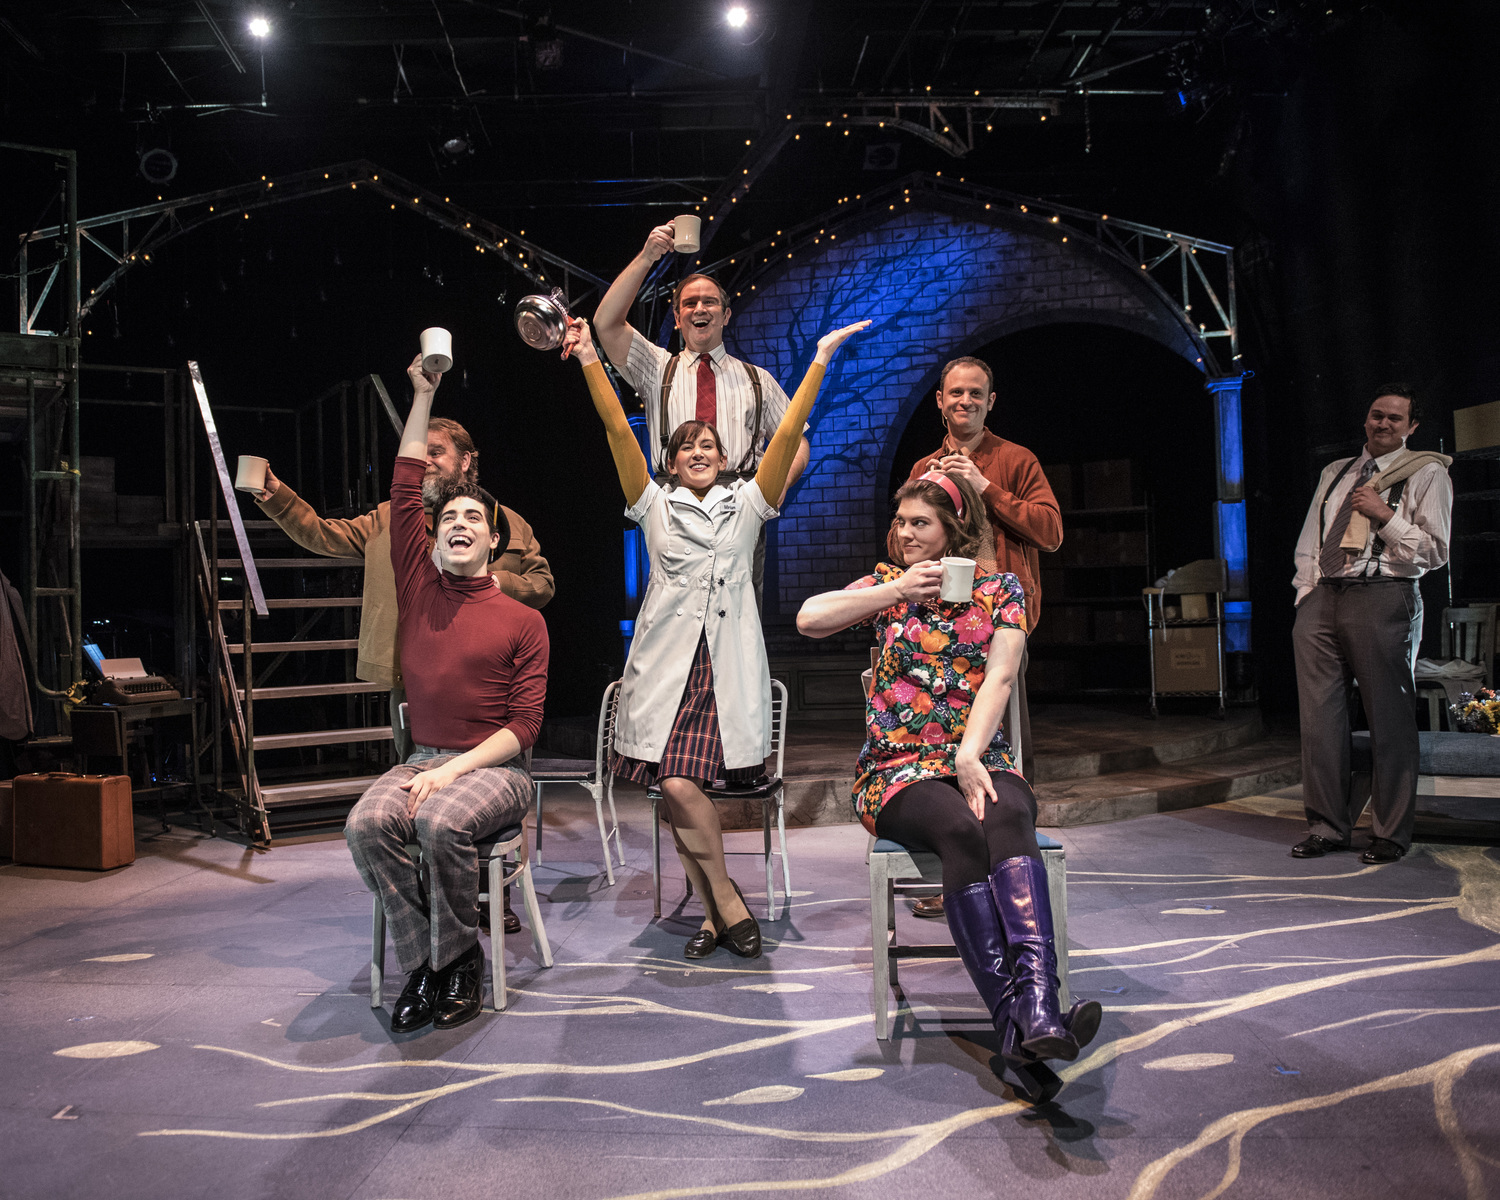 BWW Review: FLY BY NIGHT at 1st Stage